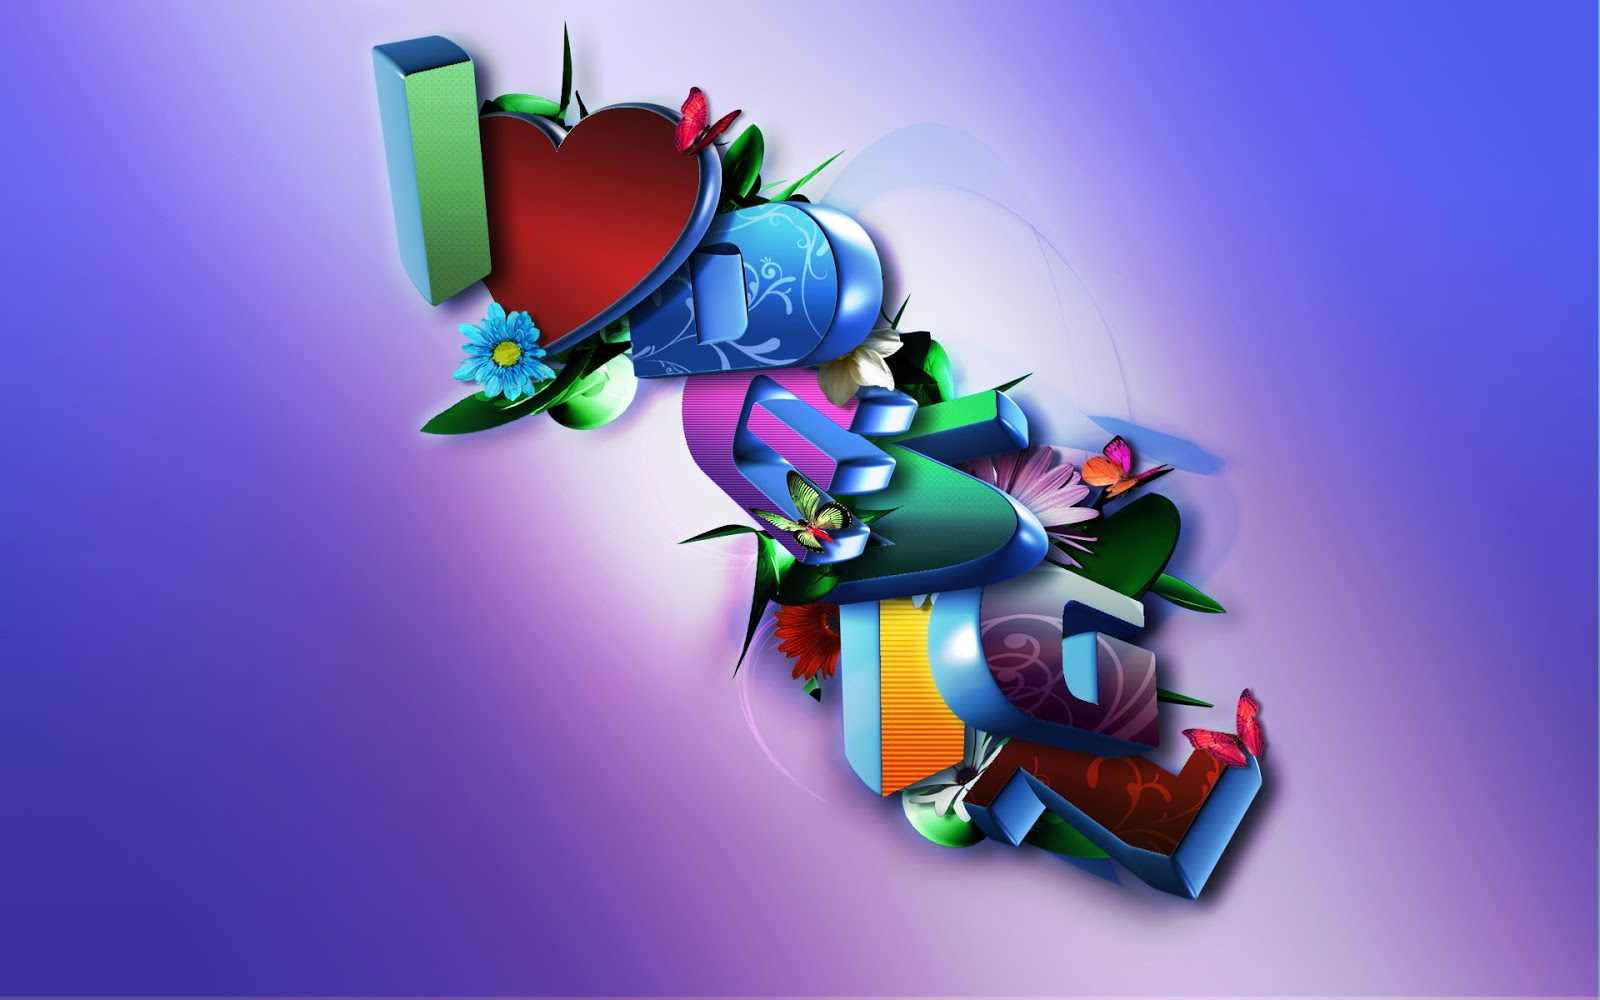 Best beautiful wallpaper 3d love for gifts valentine 39 s day 2013 free download hq wallpapers 1080p - 3d love wallpaper ...